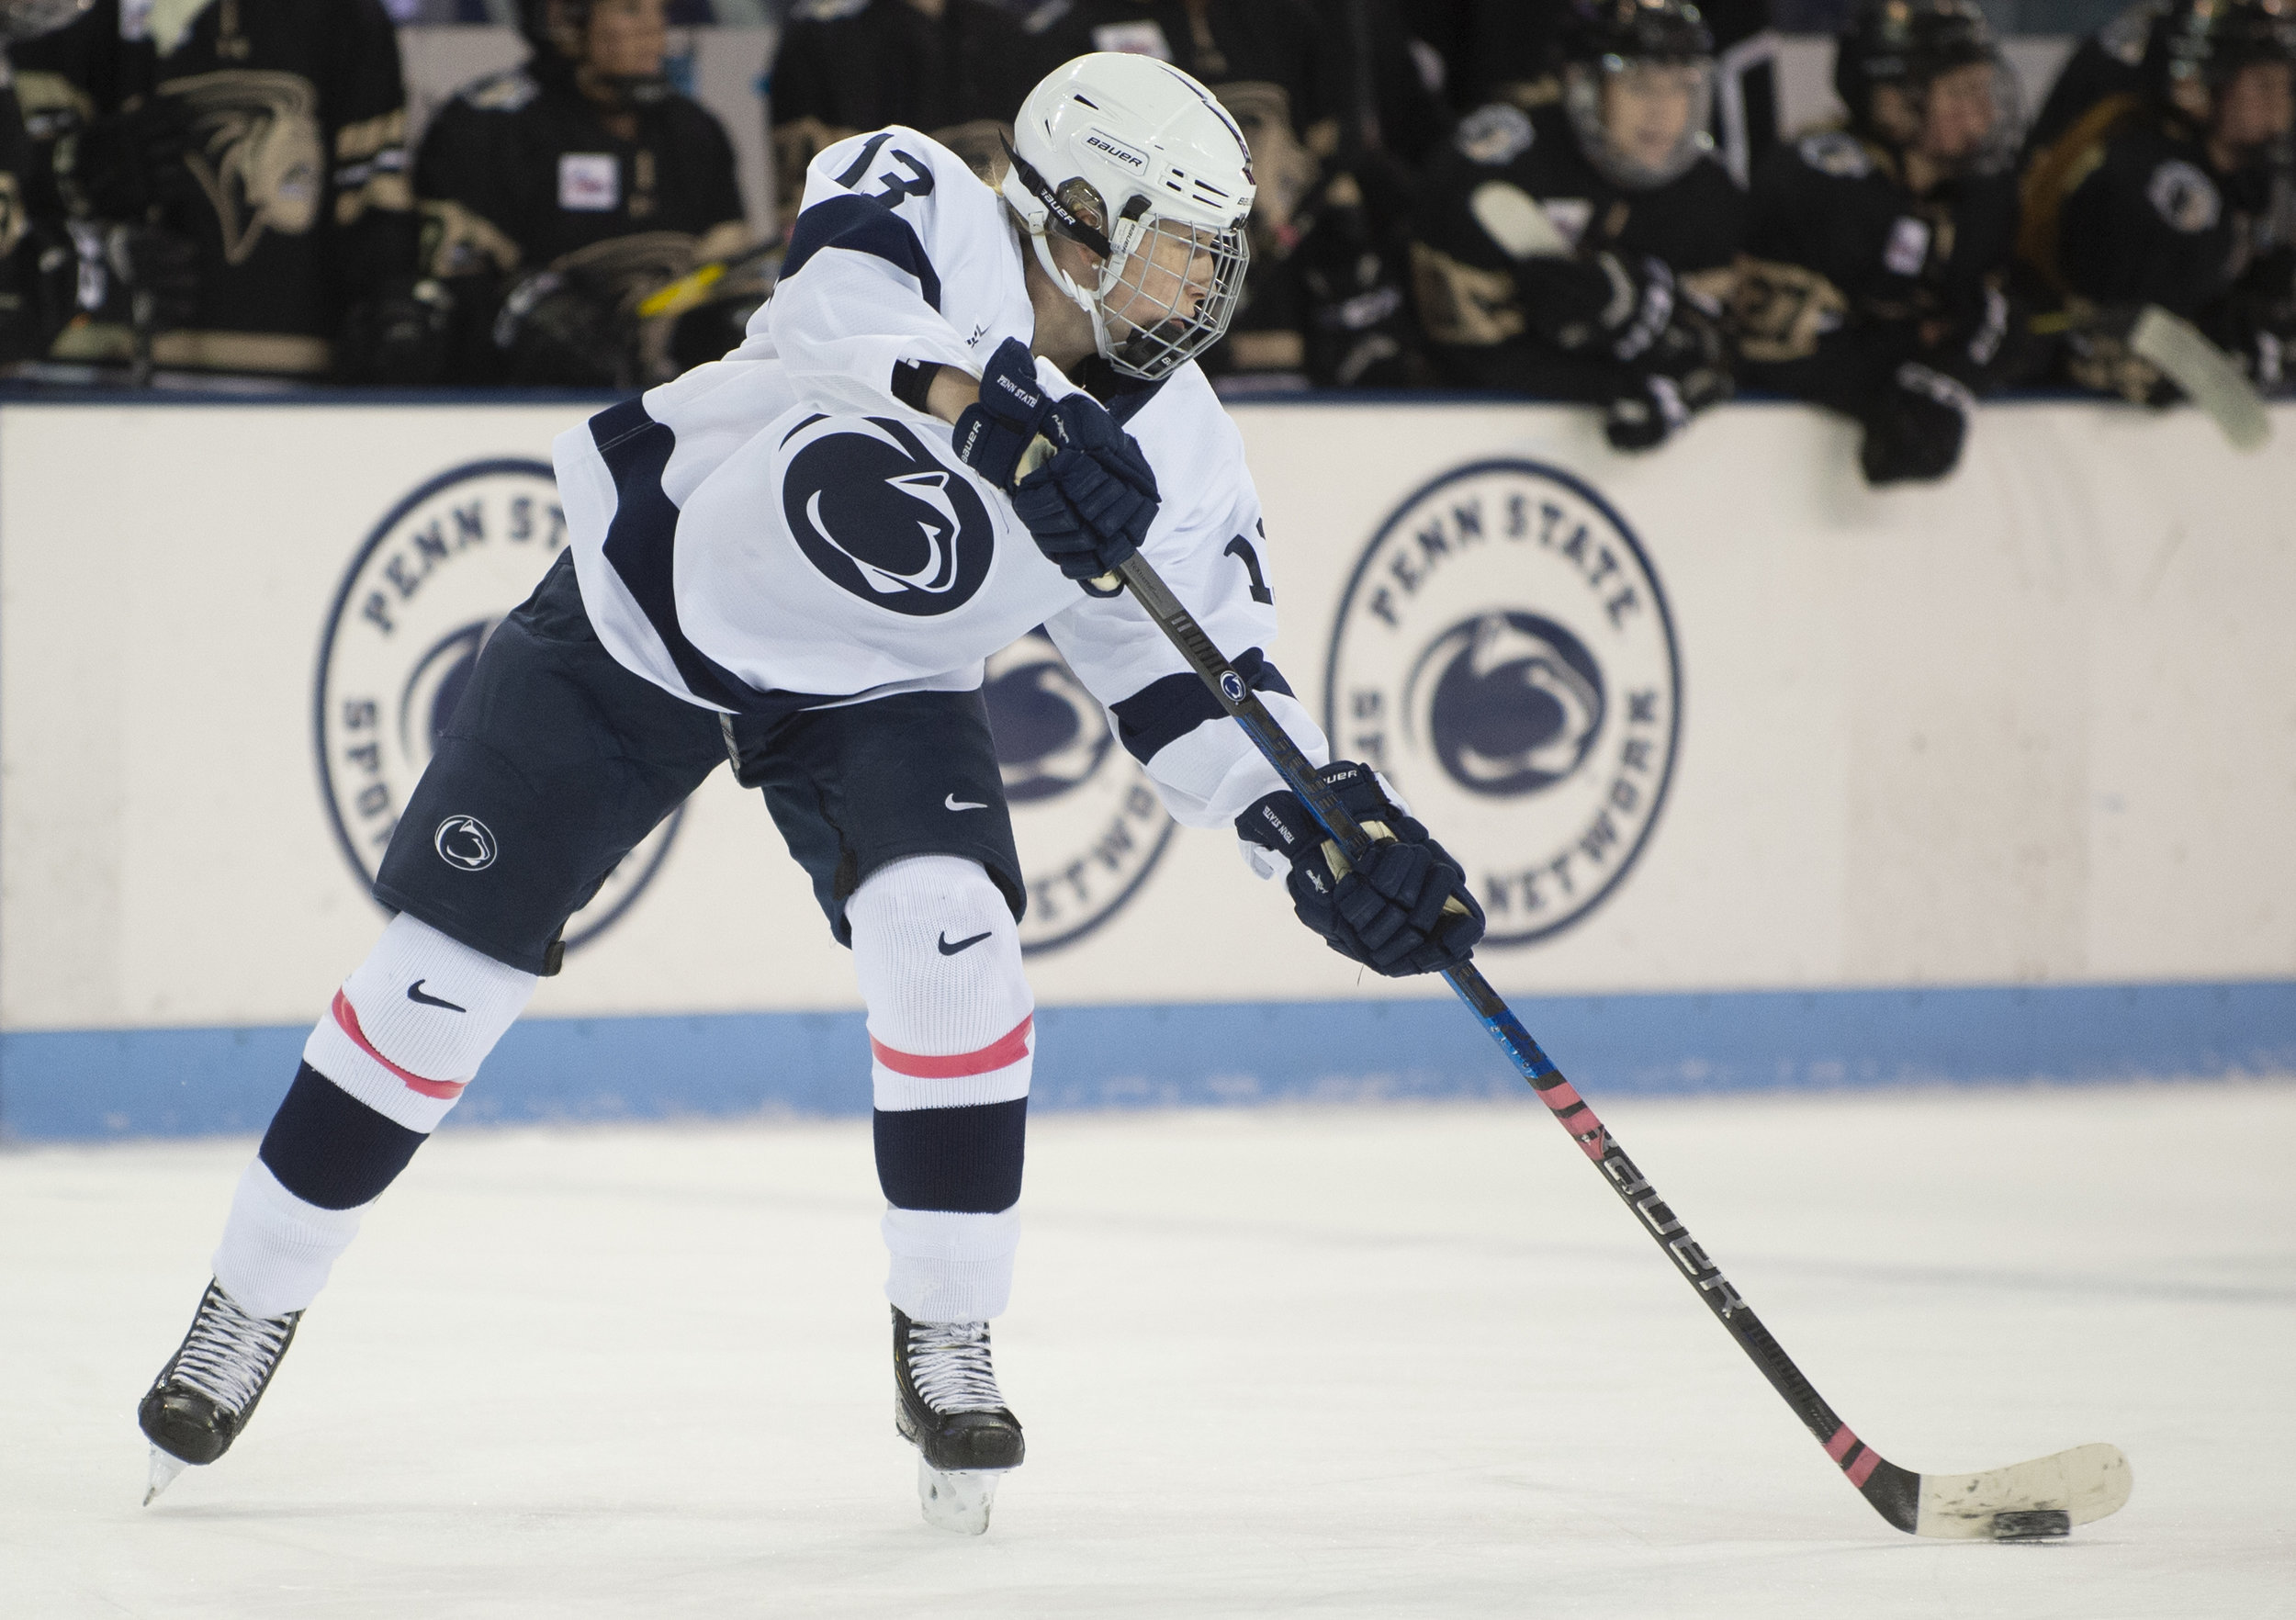 Defender Rene Gangarosa (13) passes the puck during the women's hockey game against Lindenwood at Pegula Ice Arena on Jan. 21, 2019. The Nittany Lions defeat Lindenwood 2-1 and secure a series sweep. - Photo by: Noah Riffe